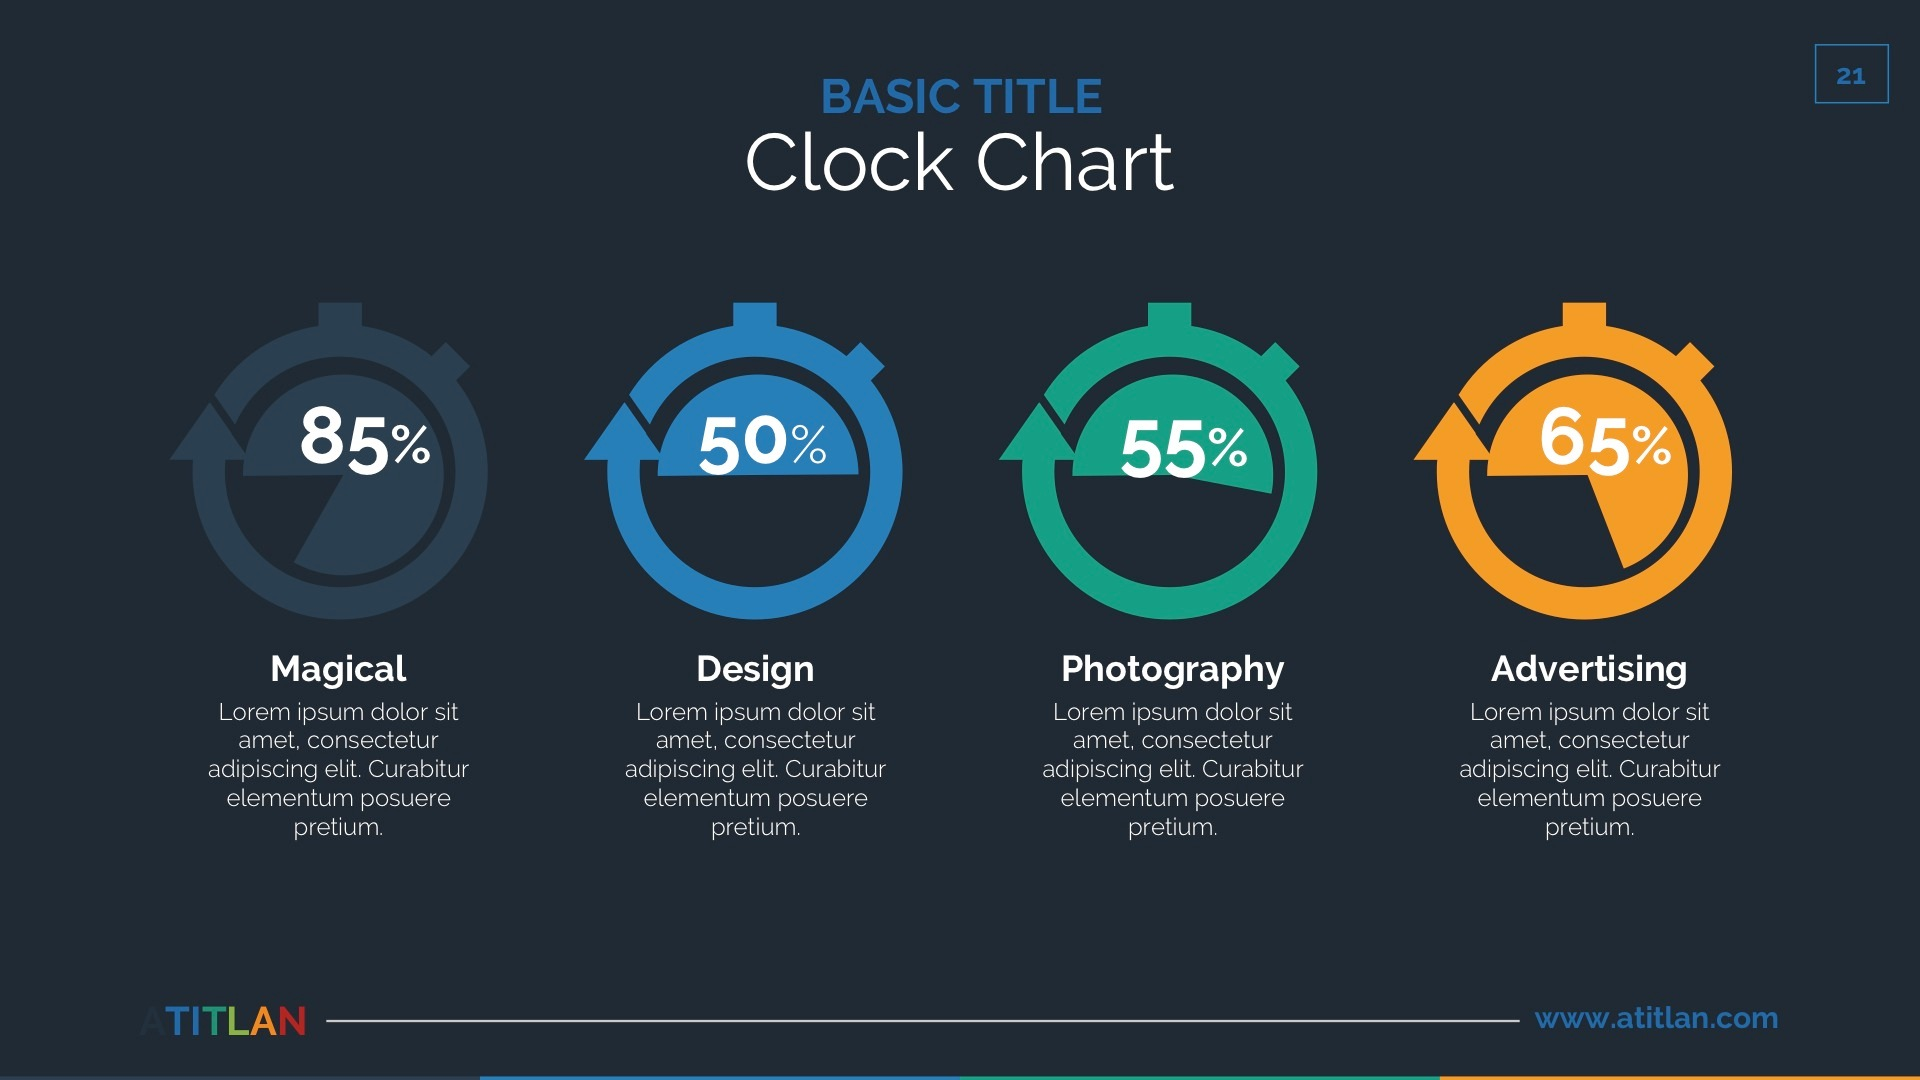 atitlan powerpoint presentation templatejetfabrik | graphicriver, Atitlan Powerpoint Presentation Template Free Download, Presentation templates